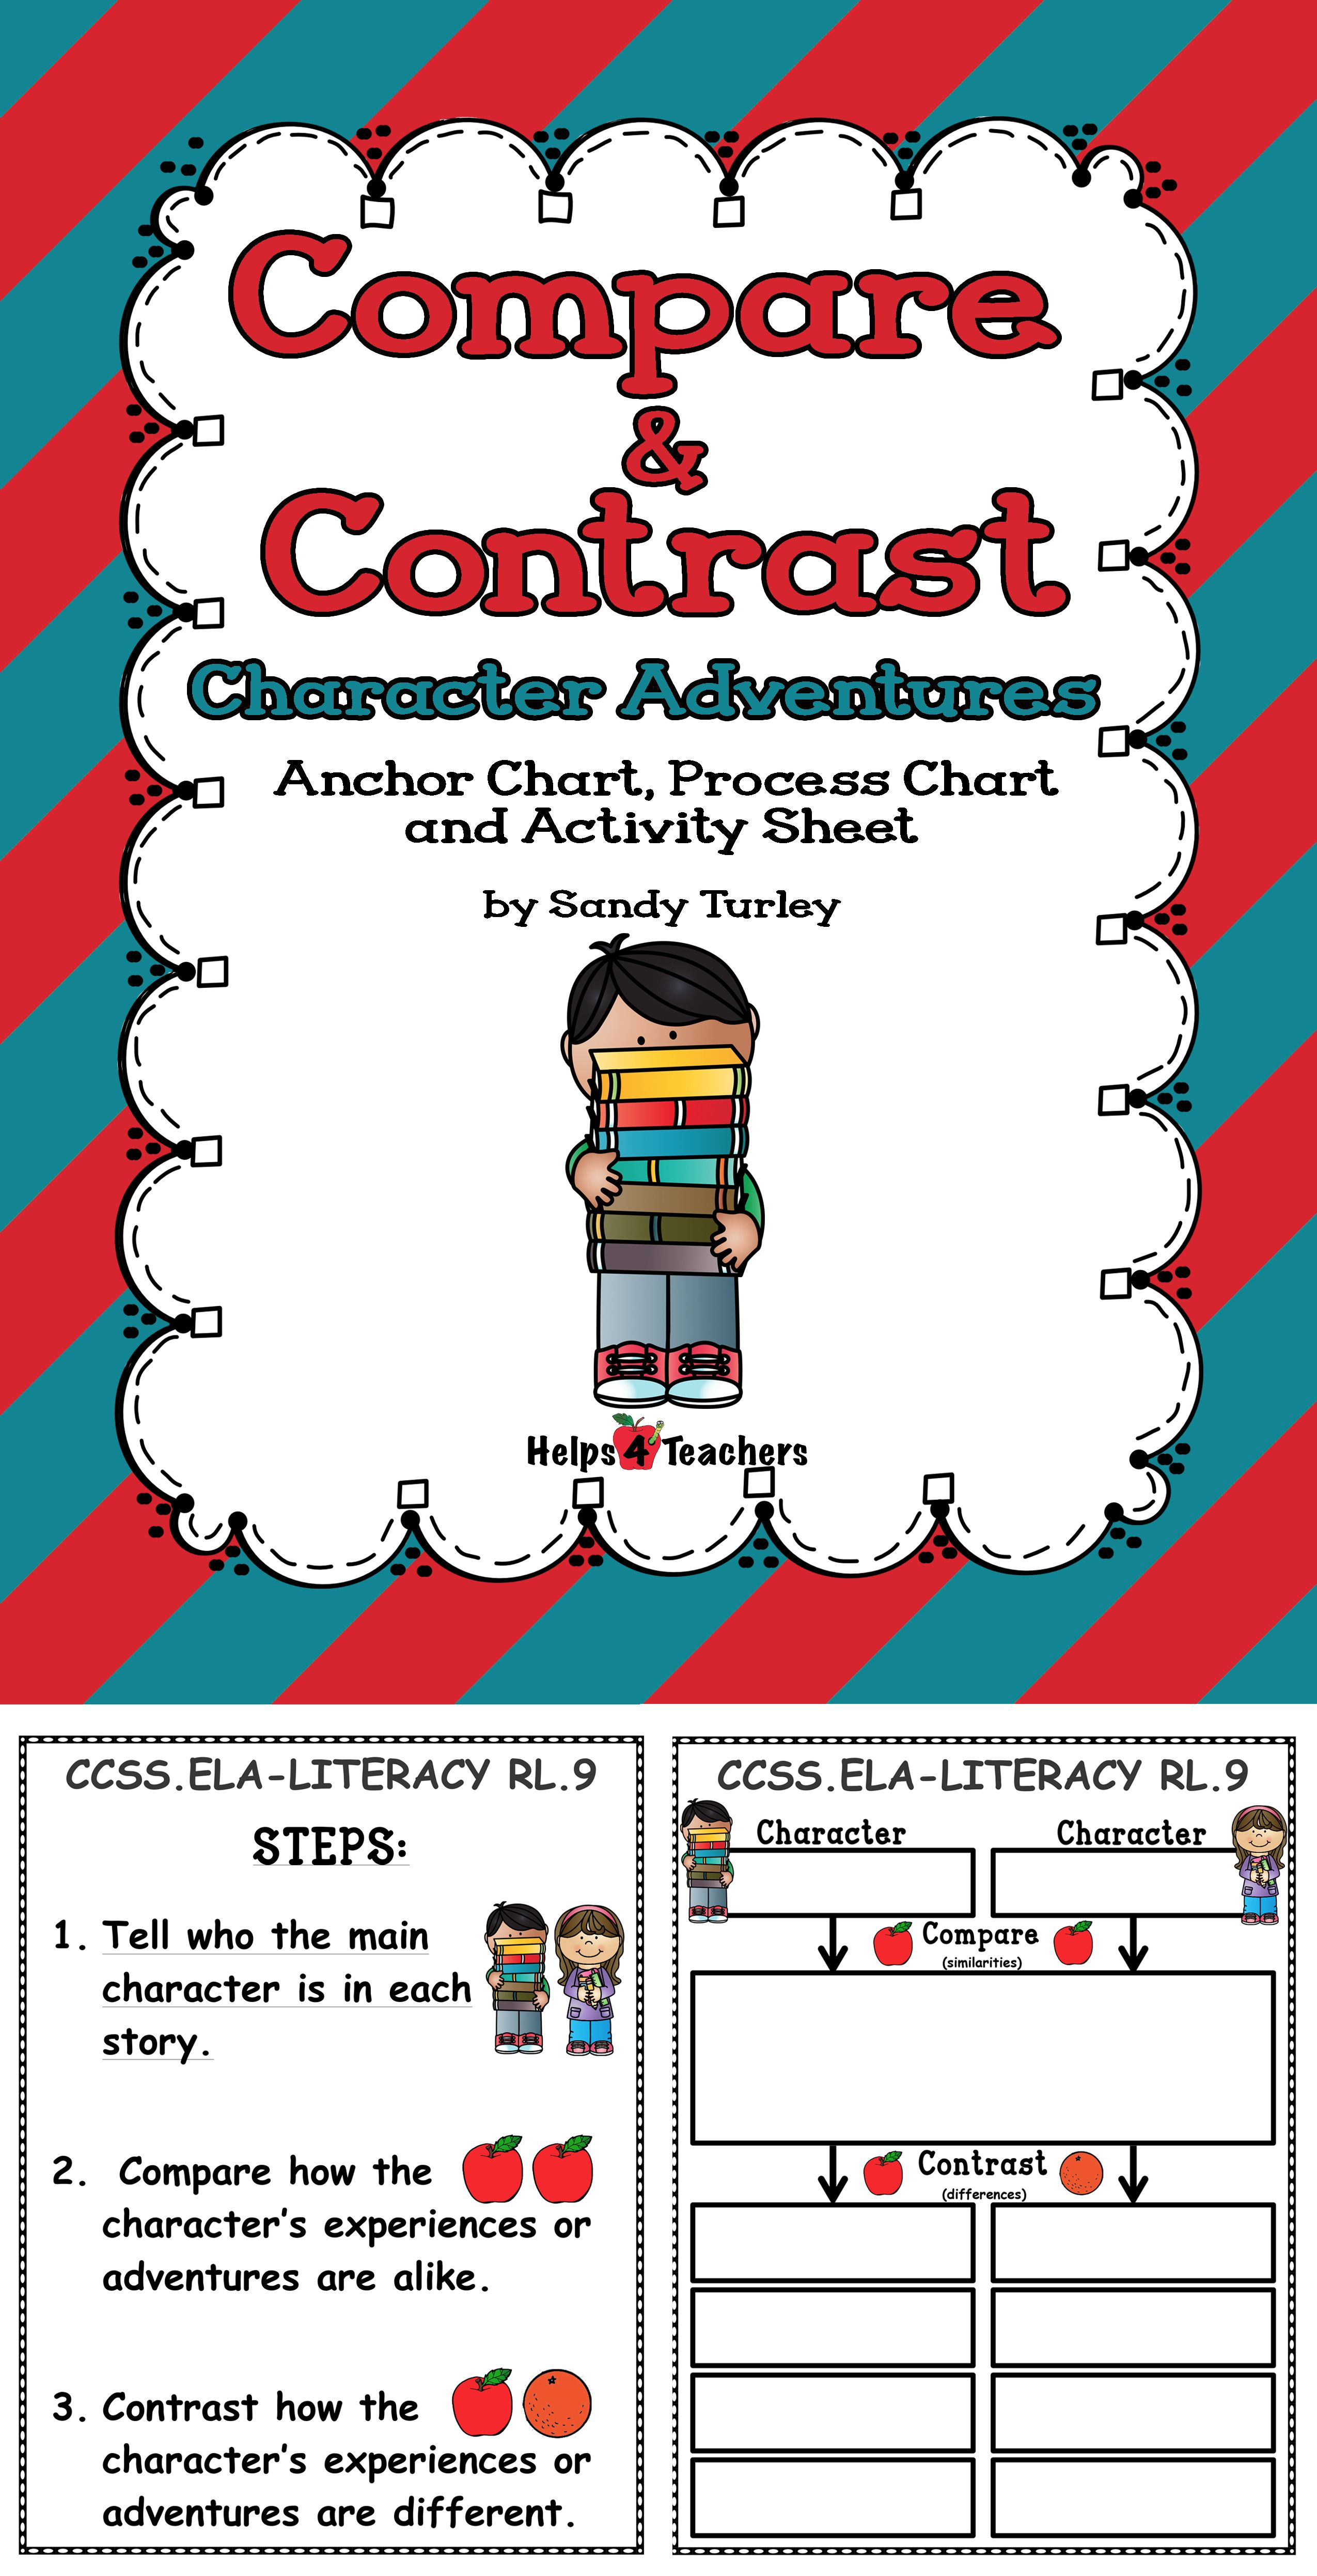 Compare Amp Contrast Character Adventures Anchor And